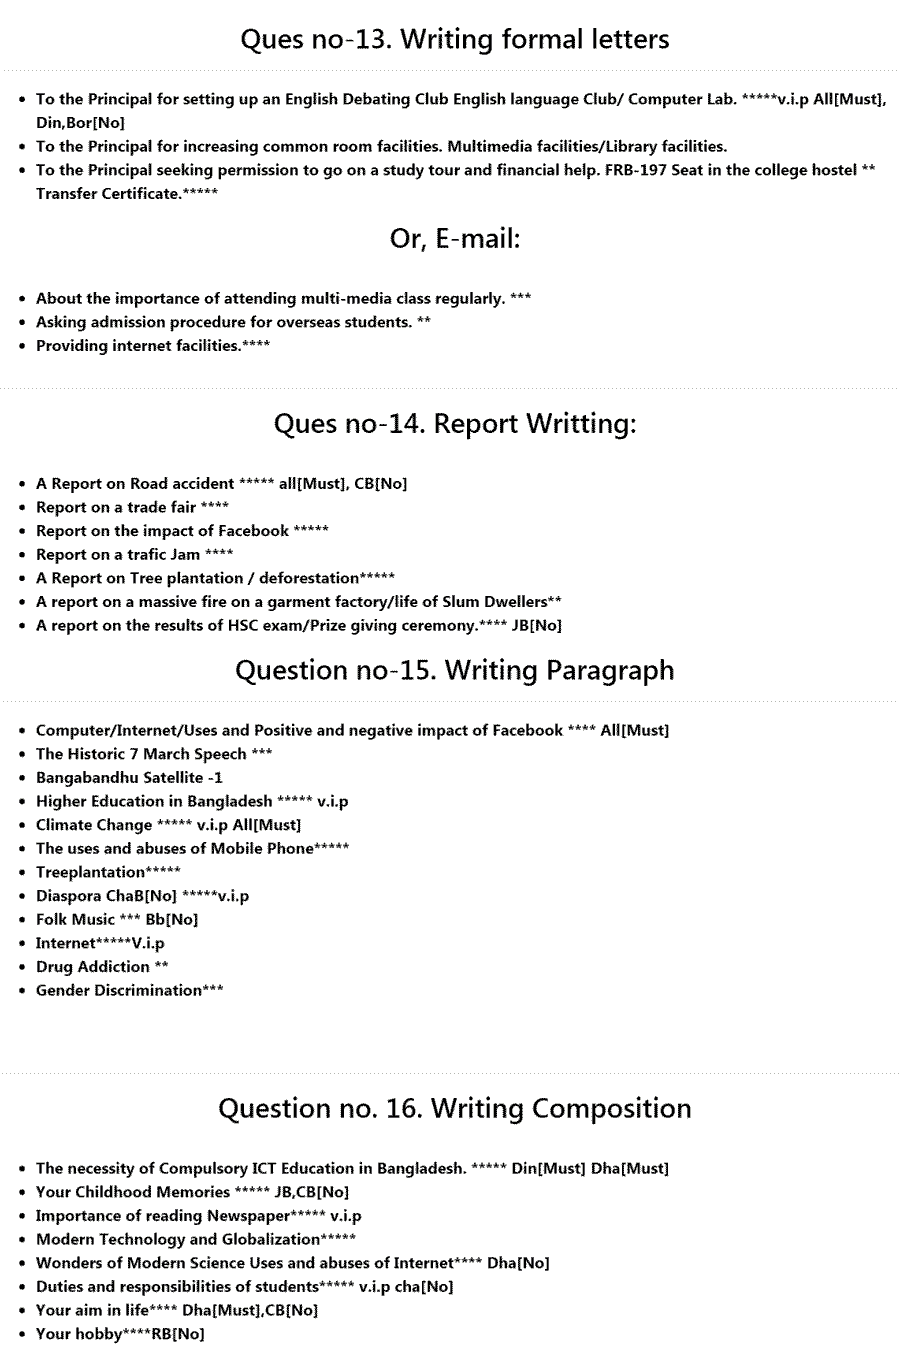 HSC English Subject Final Suggestion 2020